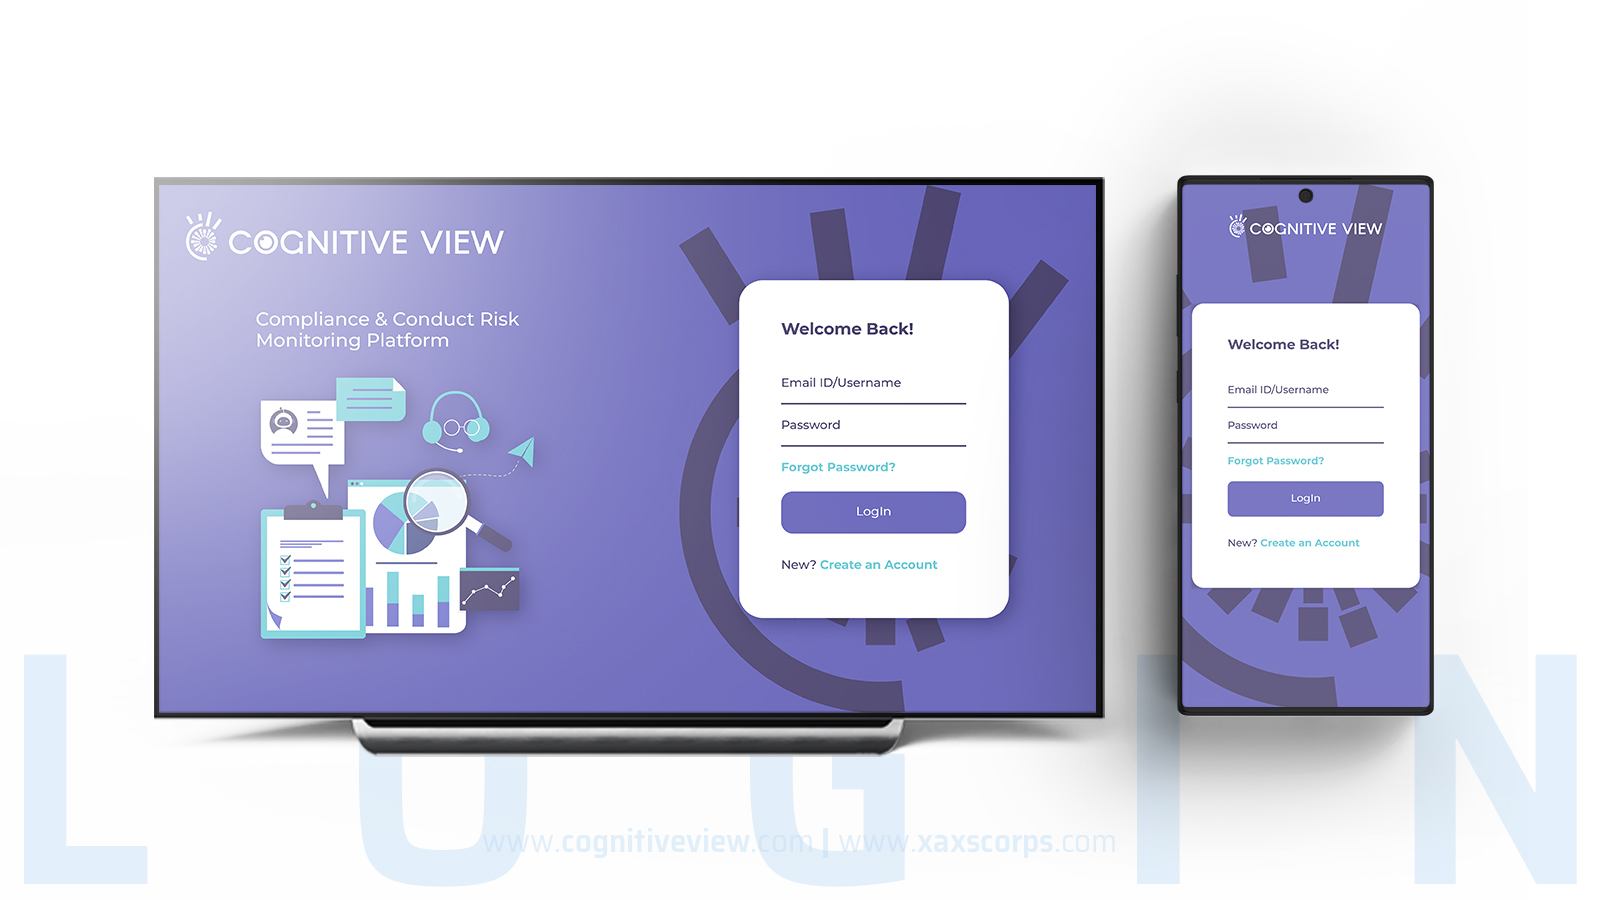 CognitiveView Login UI by XAXs Corps